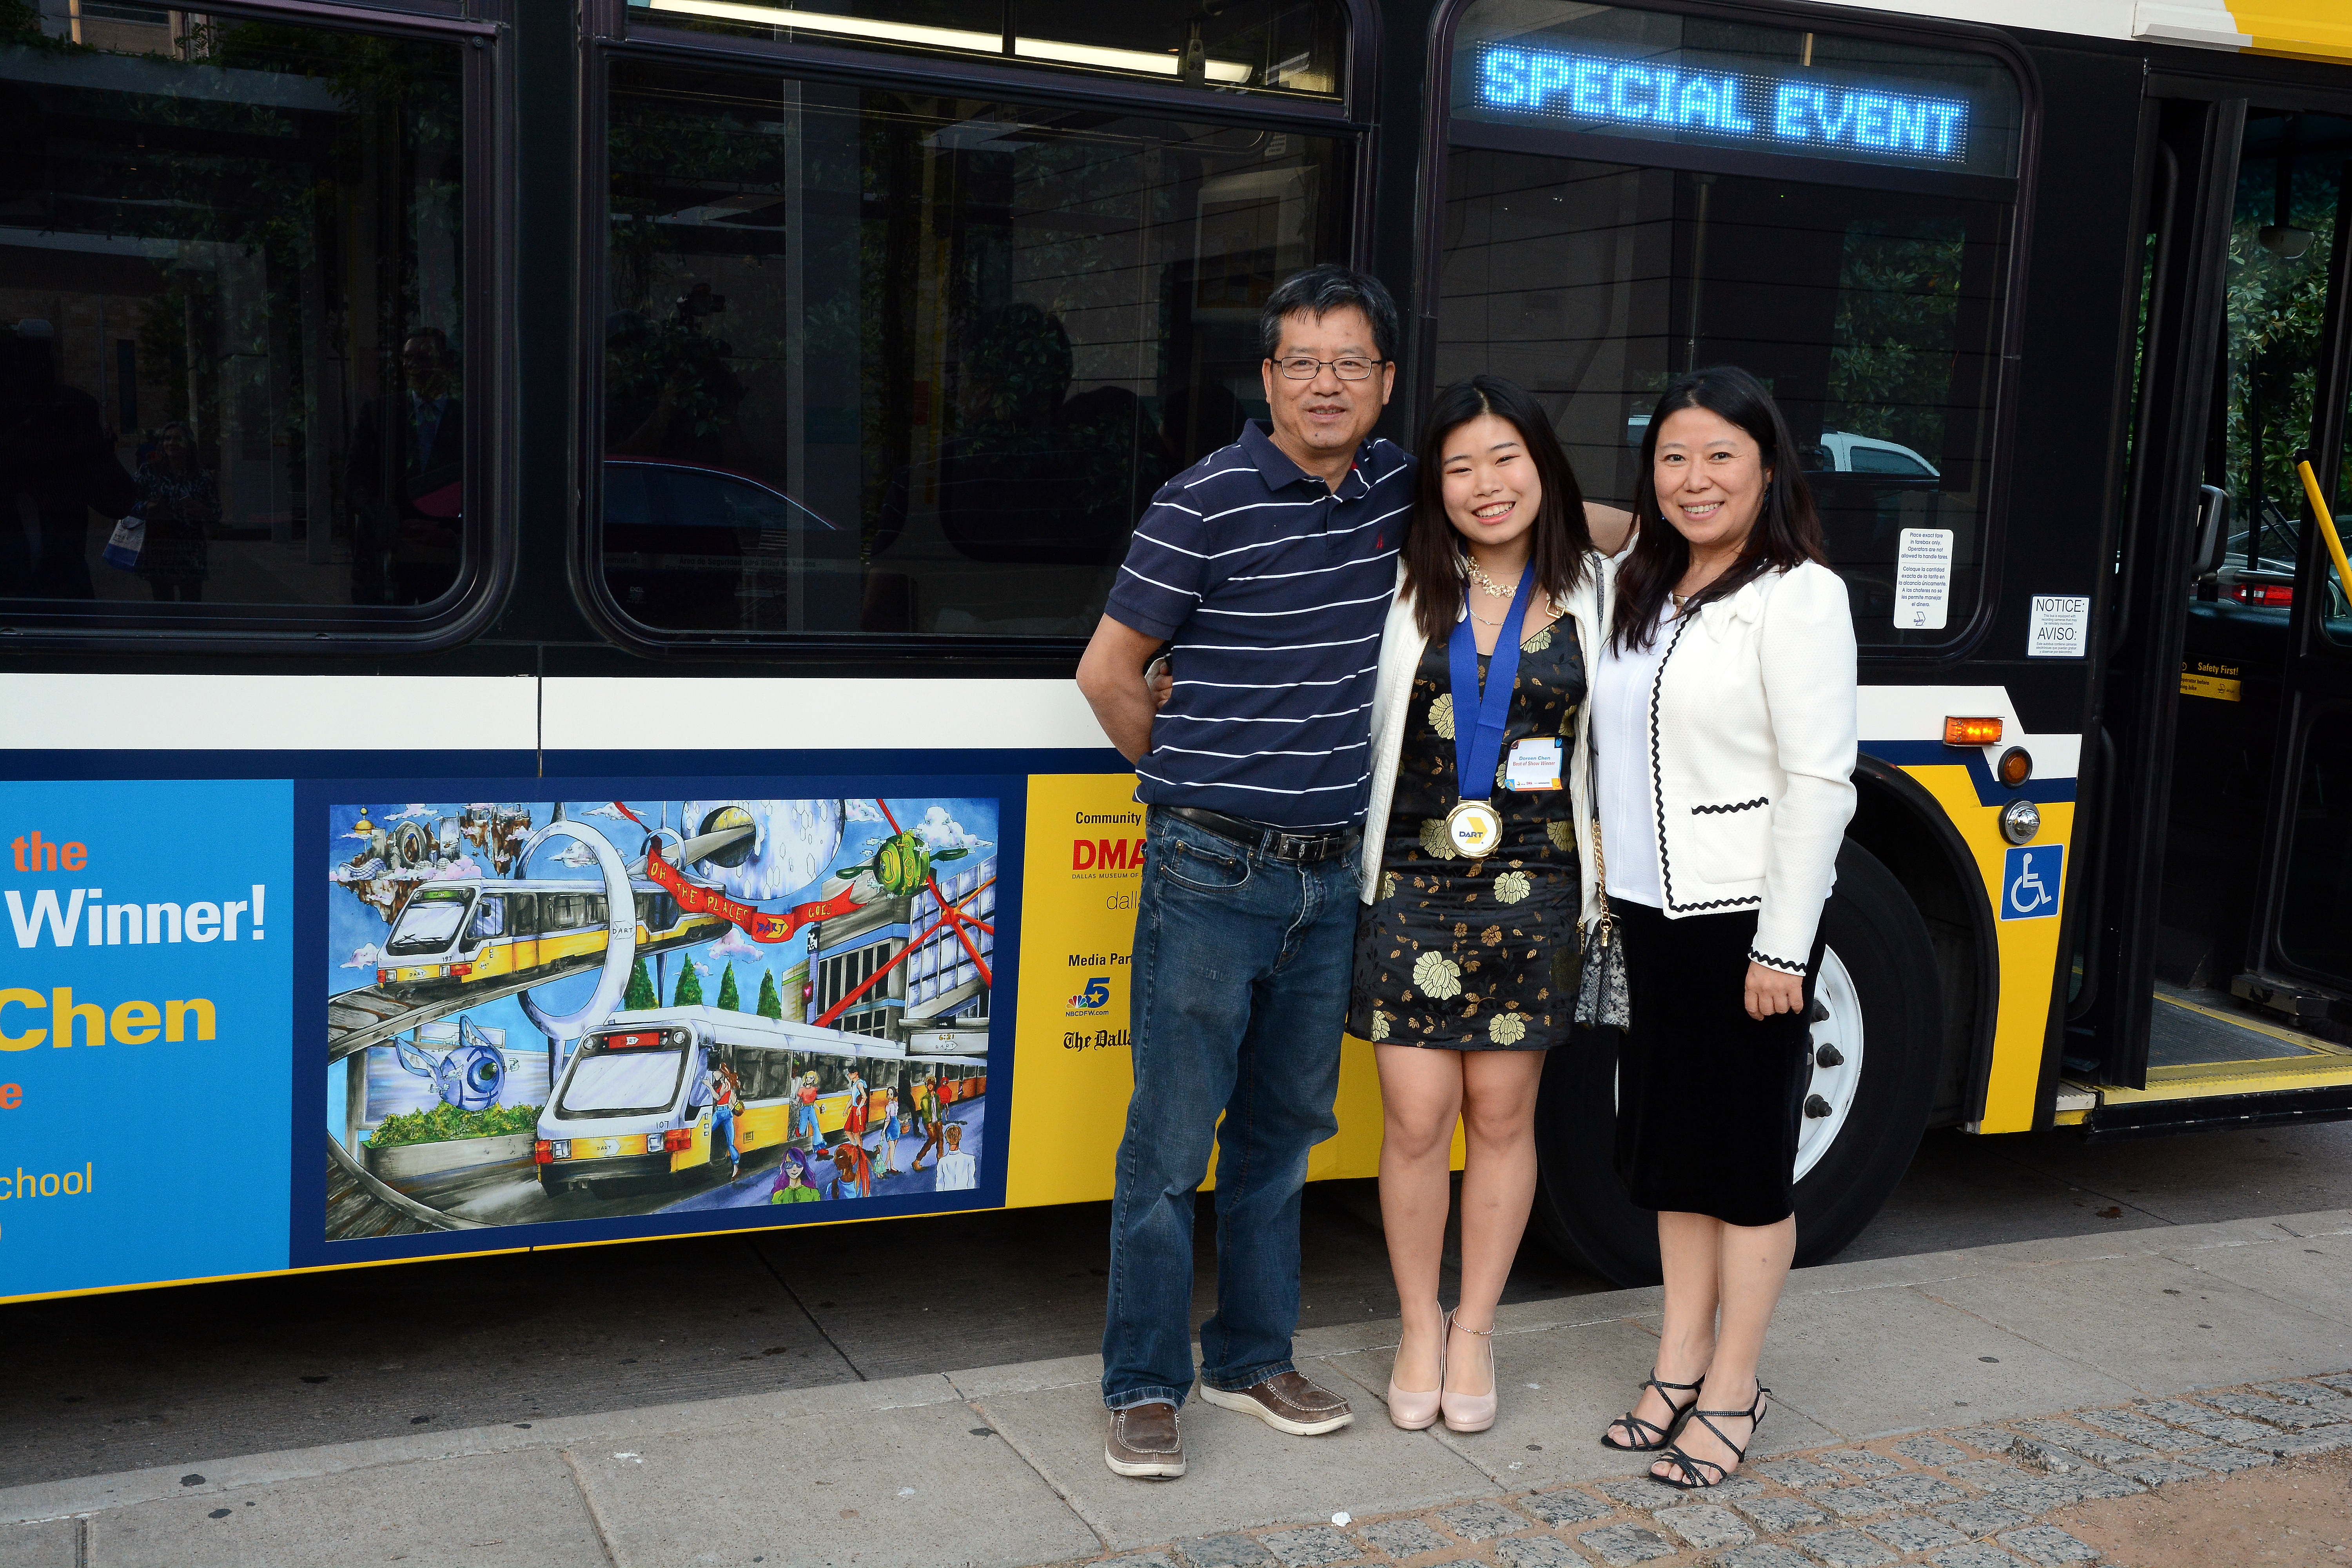 Doreen Chen art on bus & family